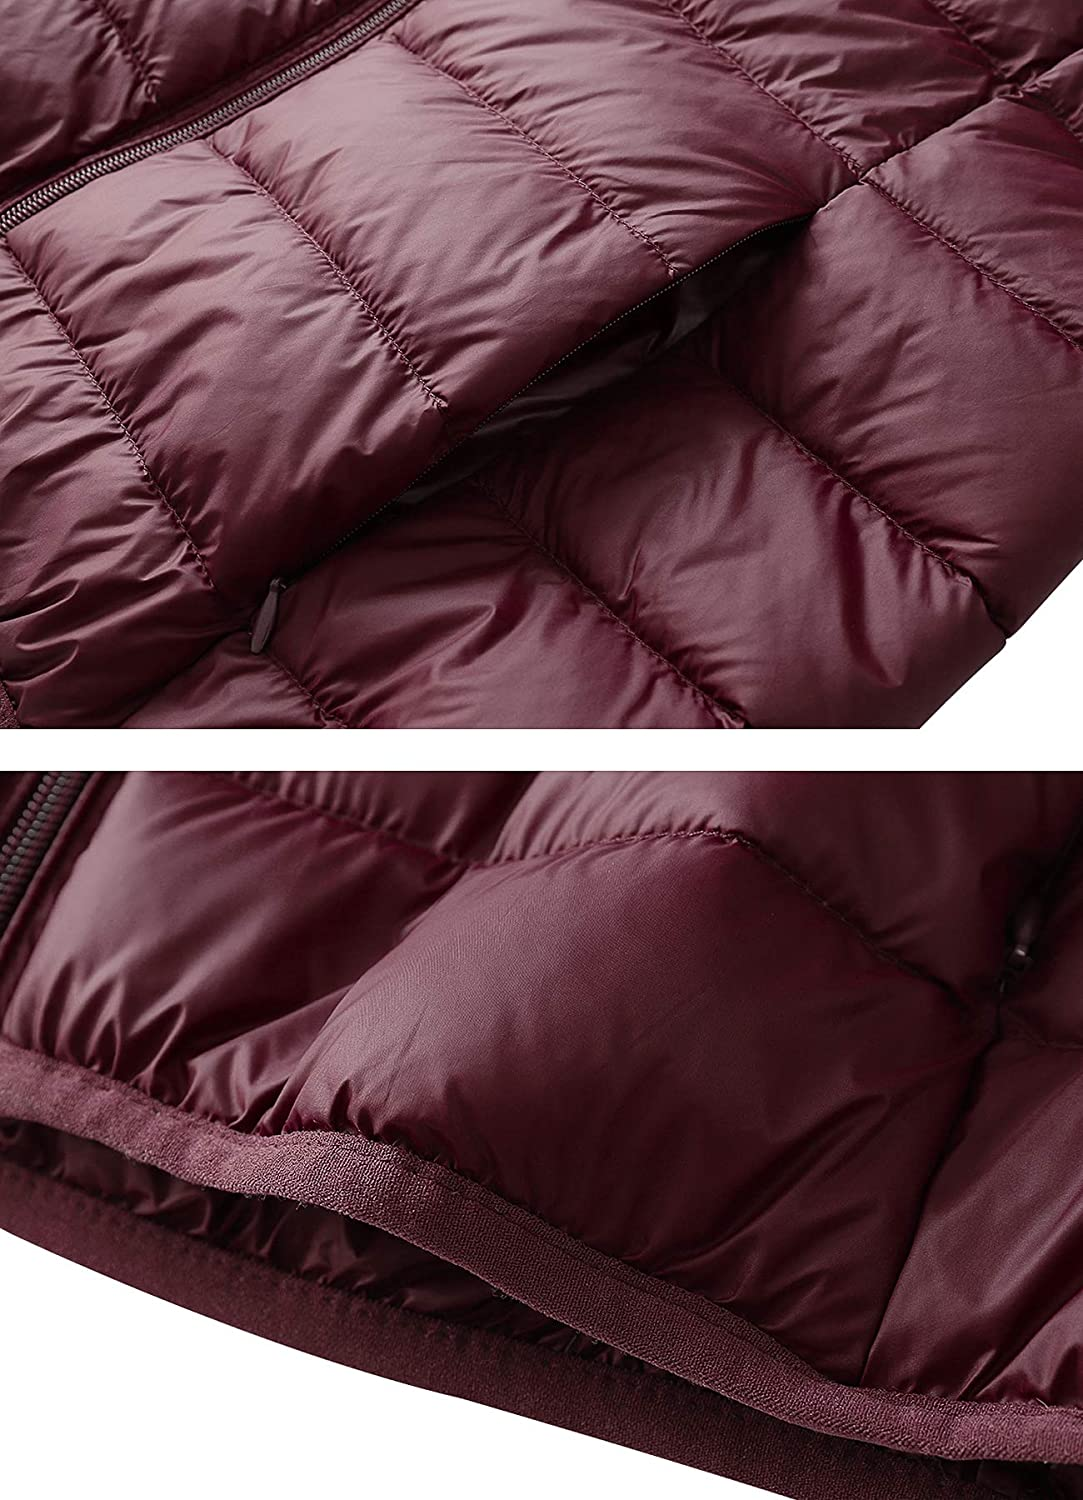 c7bff67059c Fantiny Women s Hooded Down Jacket Packable Ultra Lightweight Outwear  Puffer Coats with Travel Bag